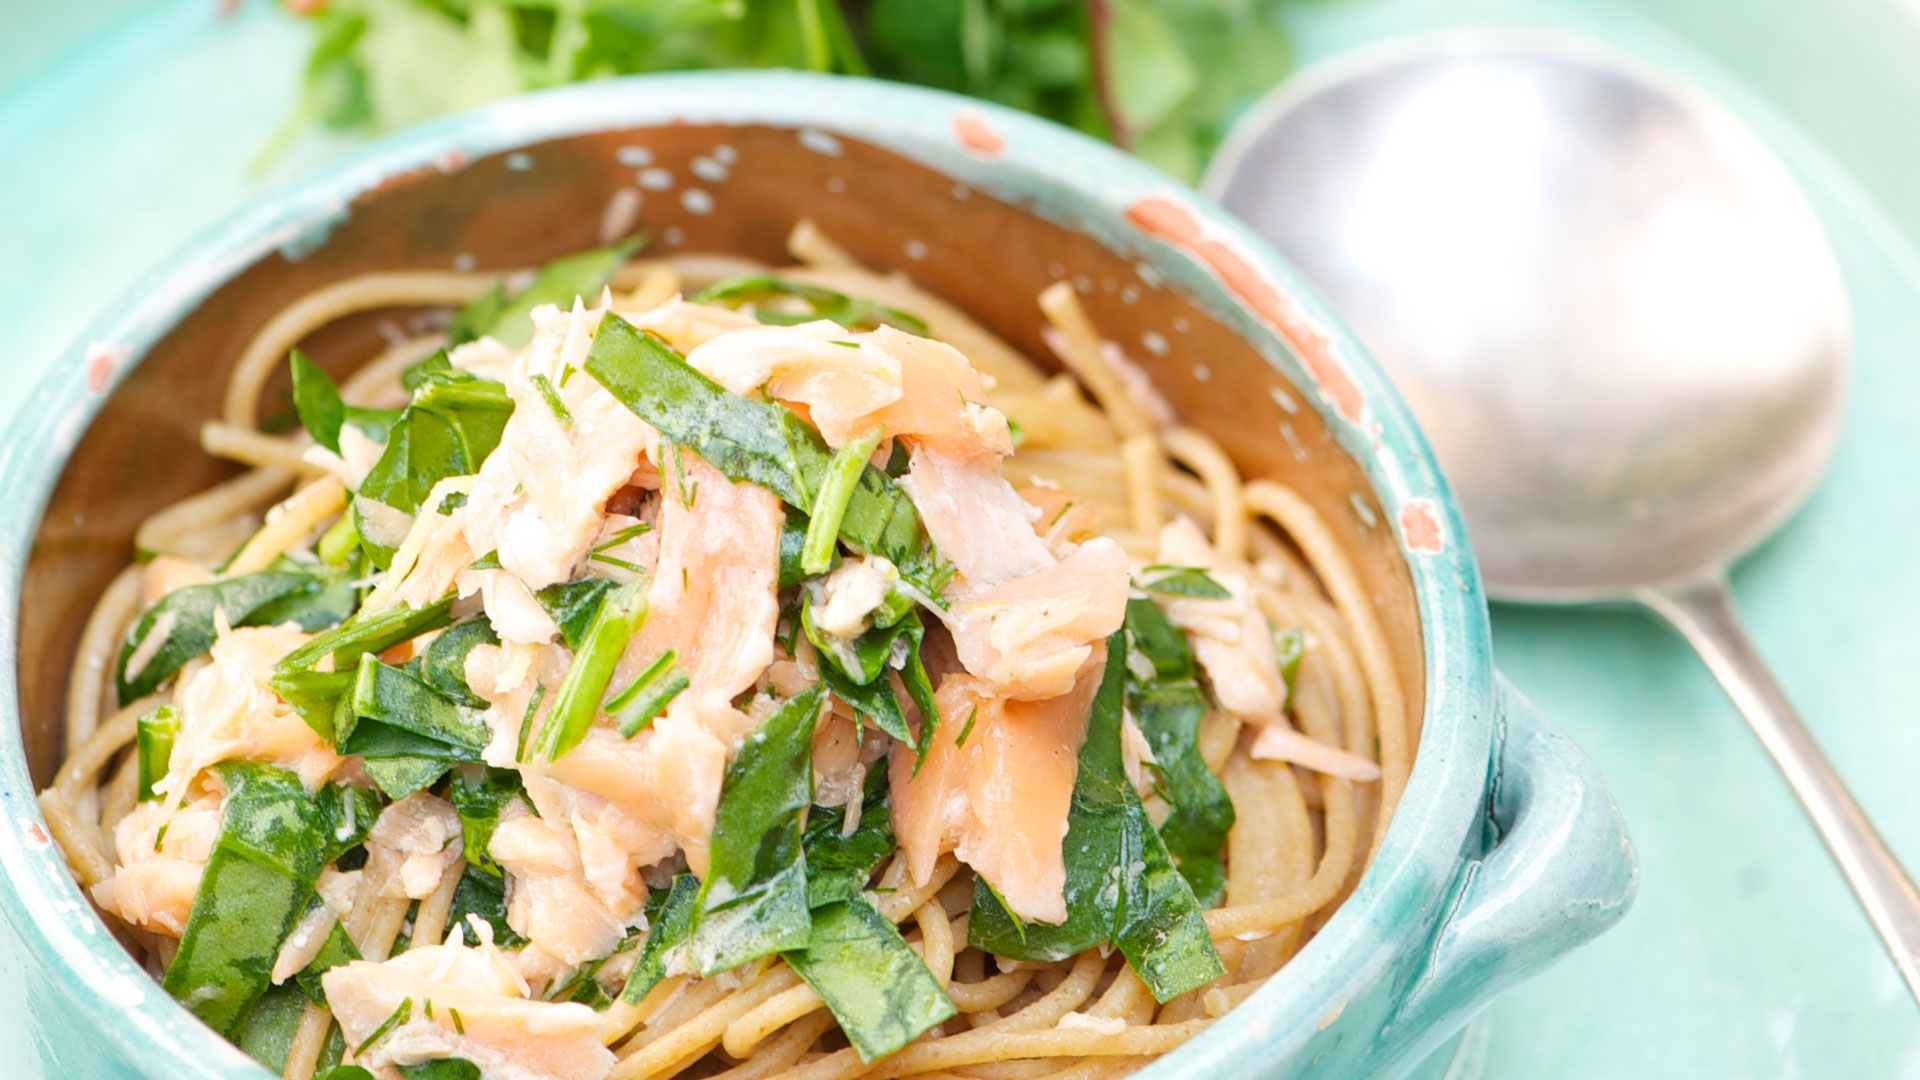 This recipe combines pasta, fish, spinach and sauce